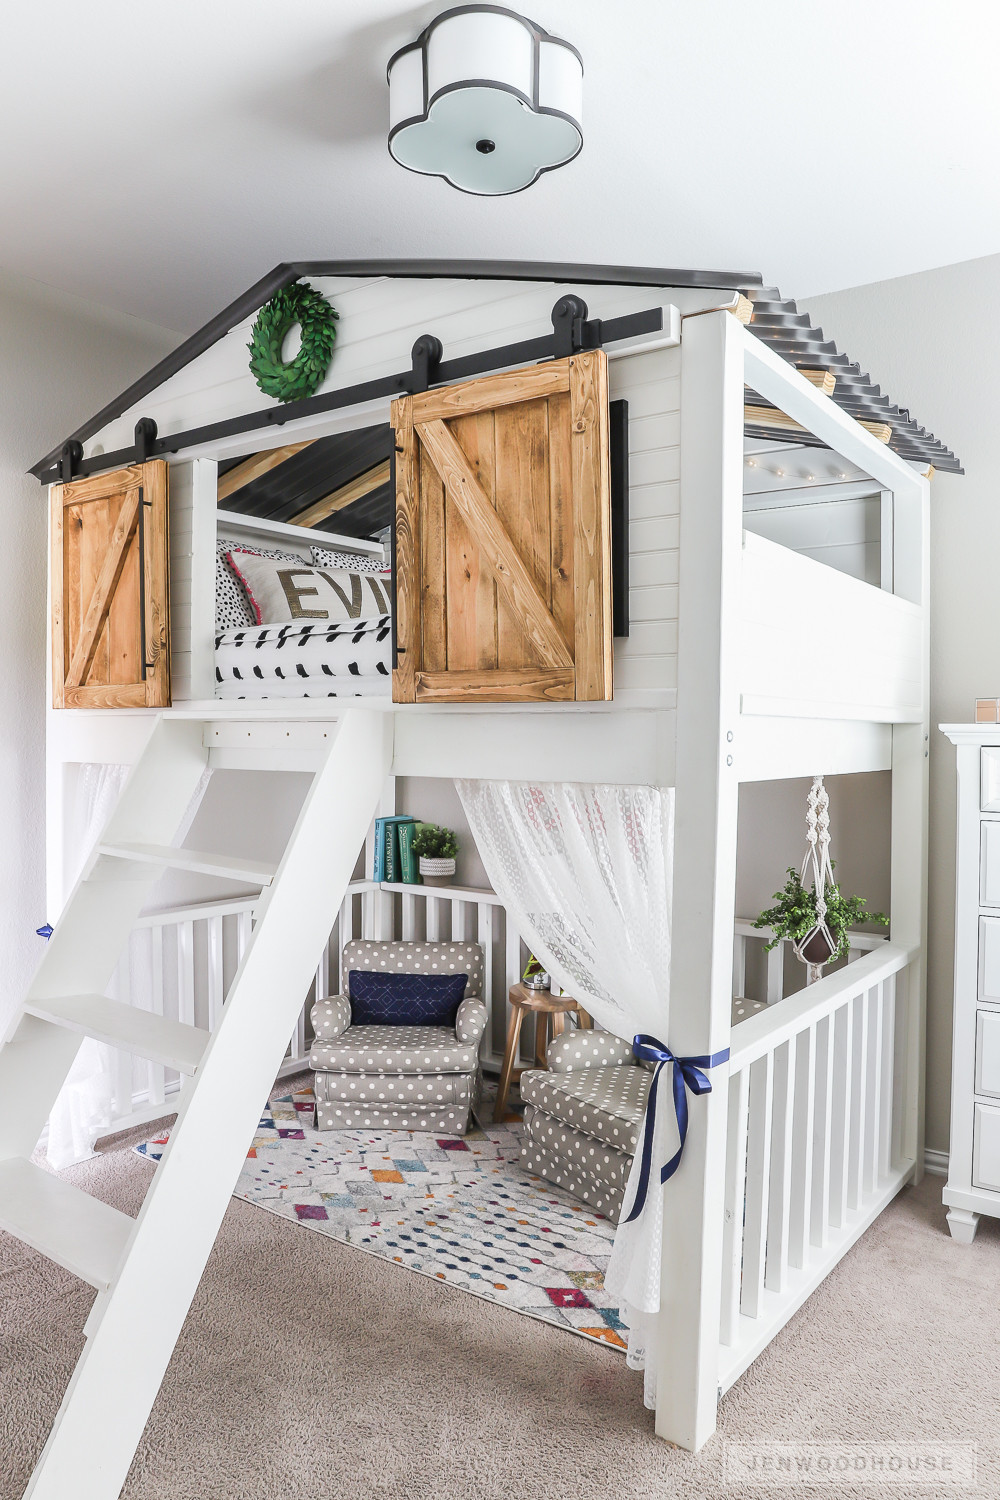 Best ideas about Lofted Bed DIY . Save or Pin How To Build A DIY Sliding Barn Door Loft Bed Full Size Now.